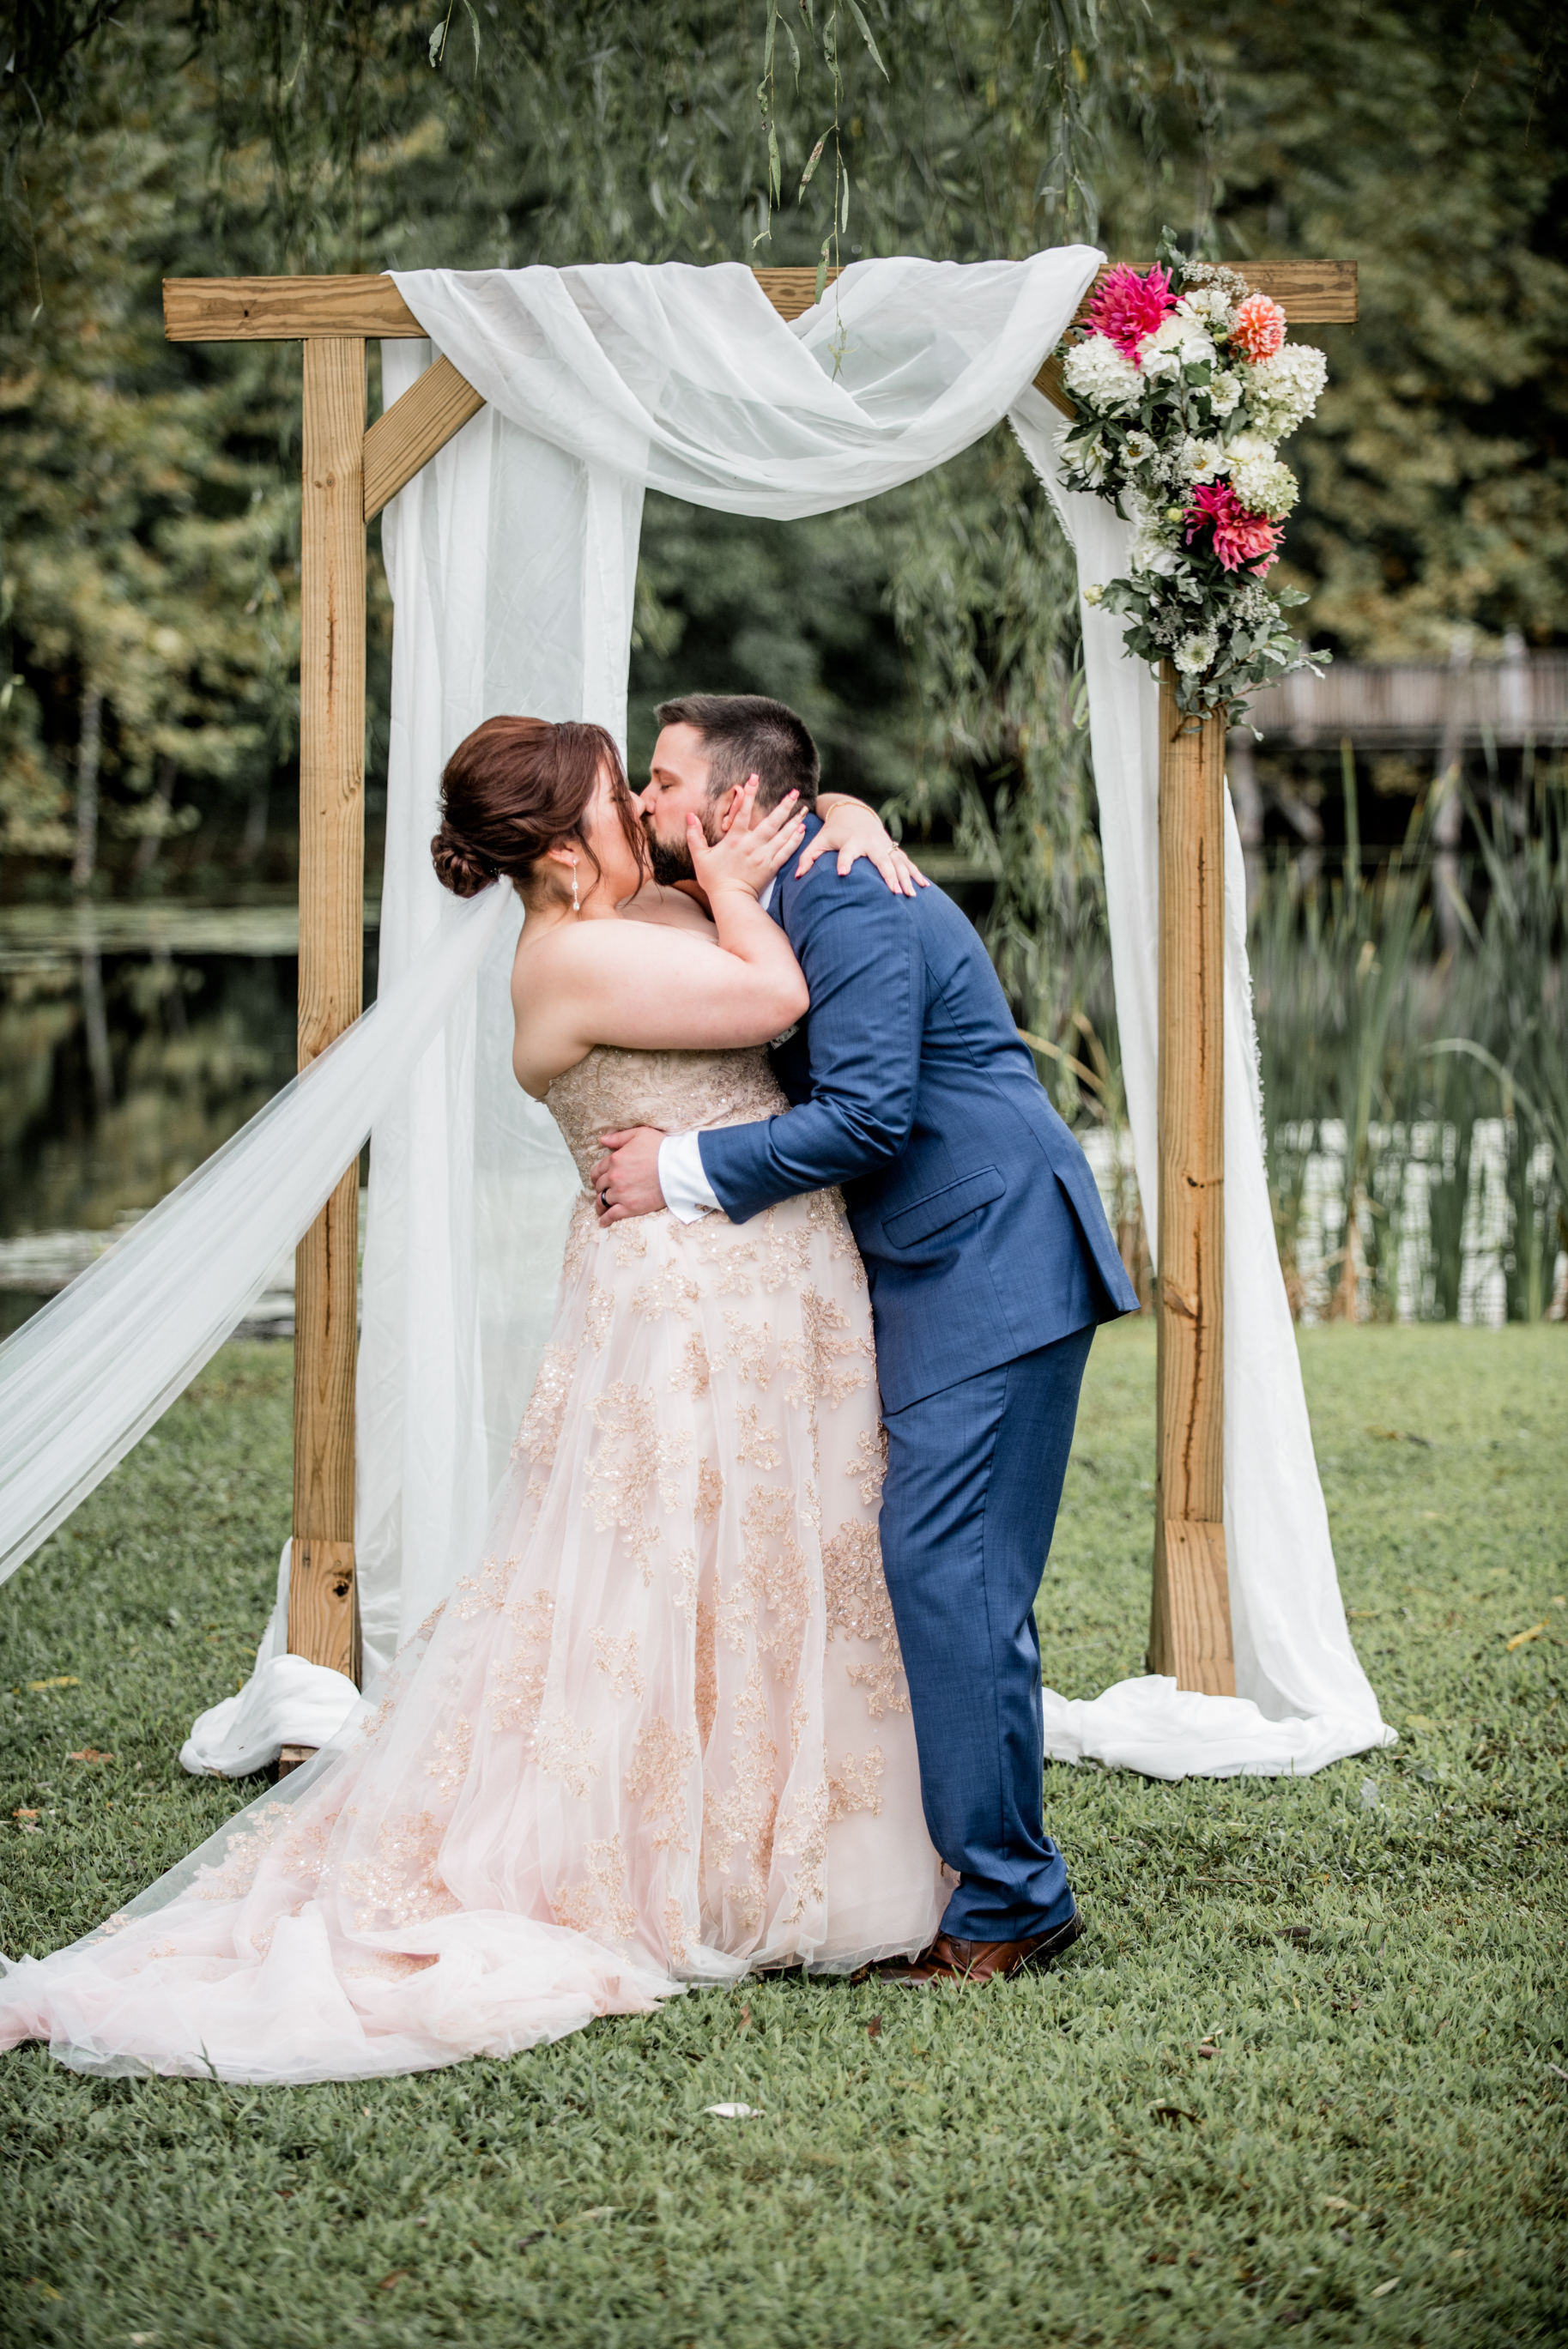 first kiss as husband and wife during romantic ceremony